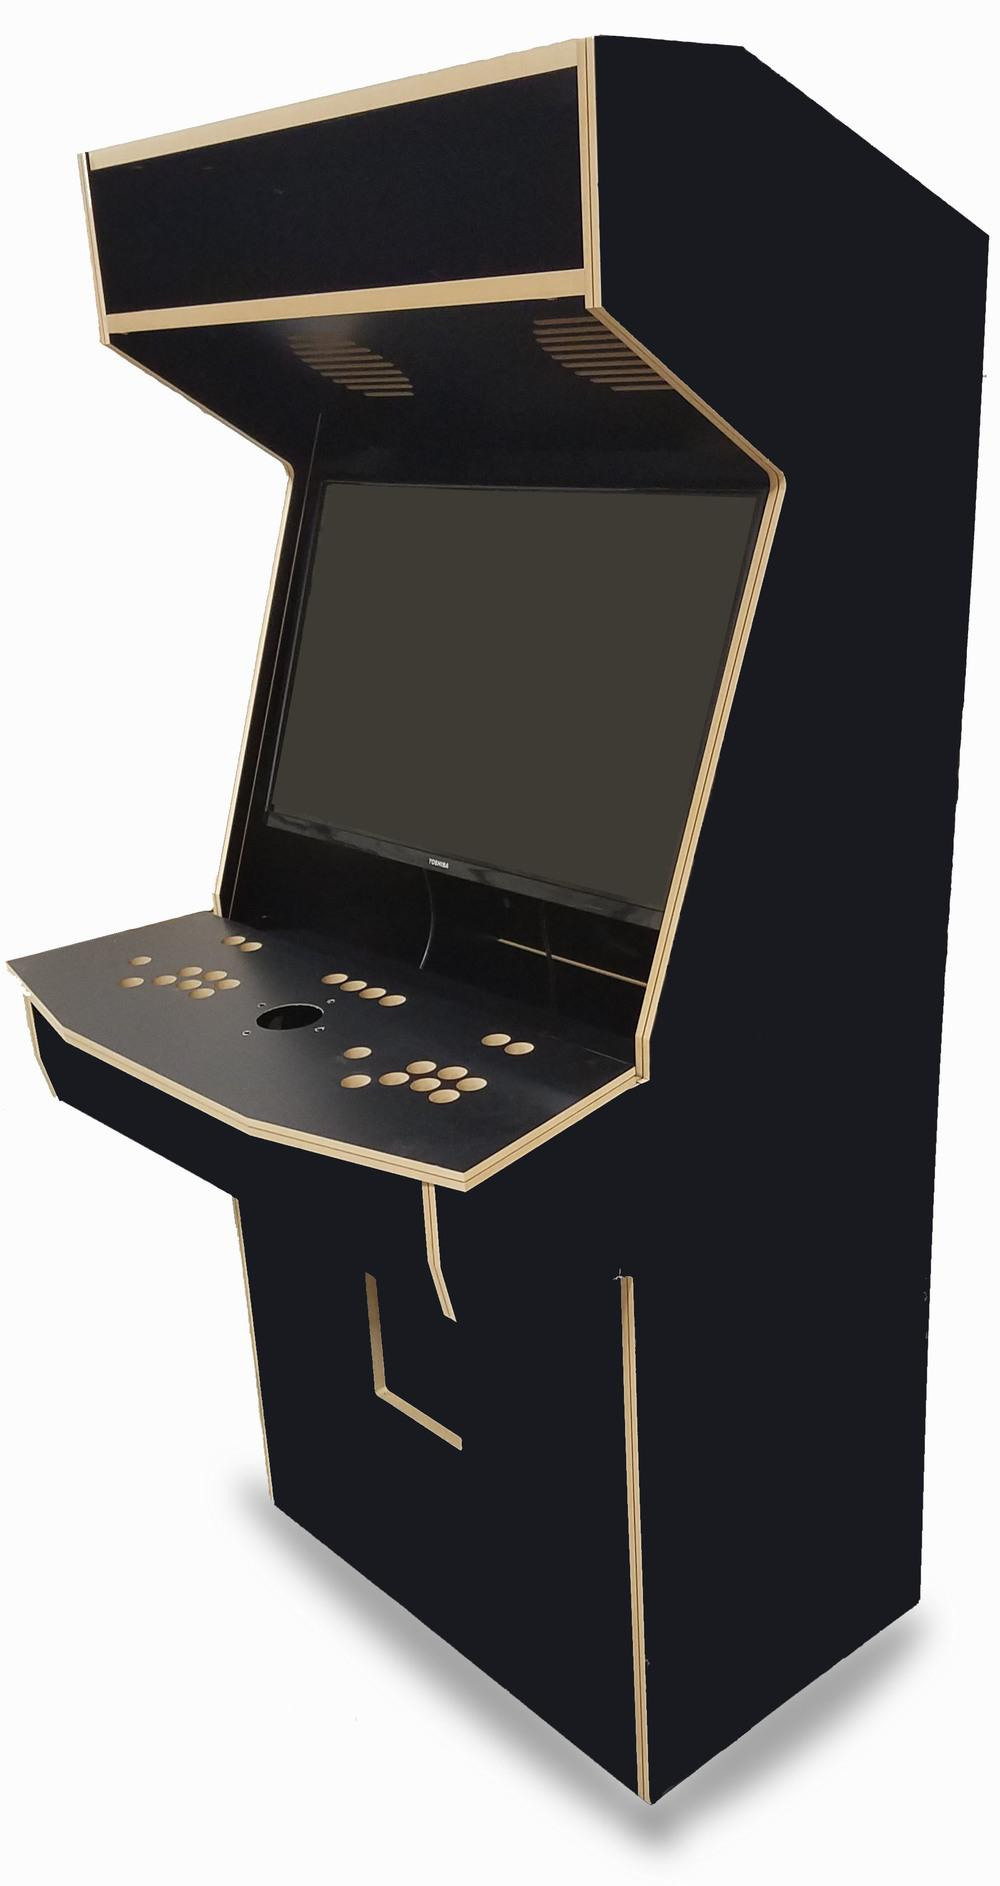 bartop arcade cabinet kit arcade cabinet kit for 32 quot easy assembly get the arcade of 10935